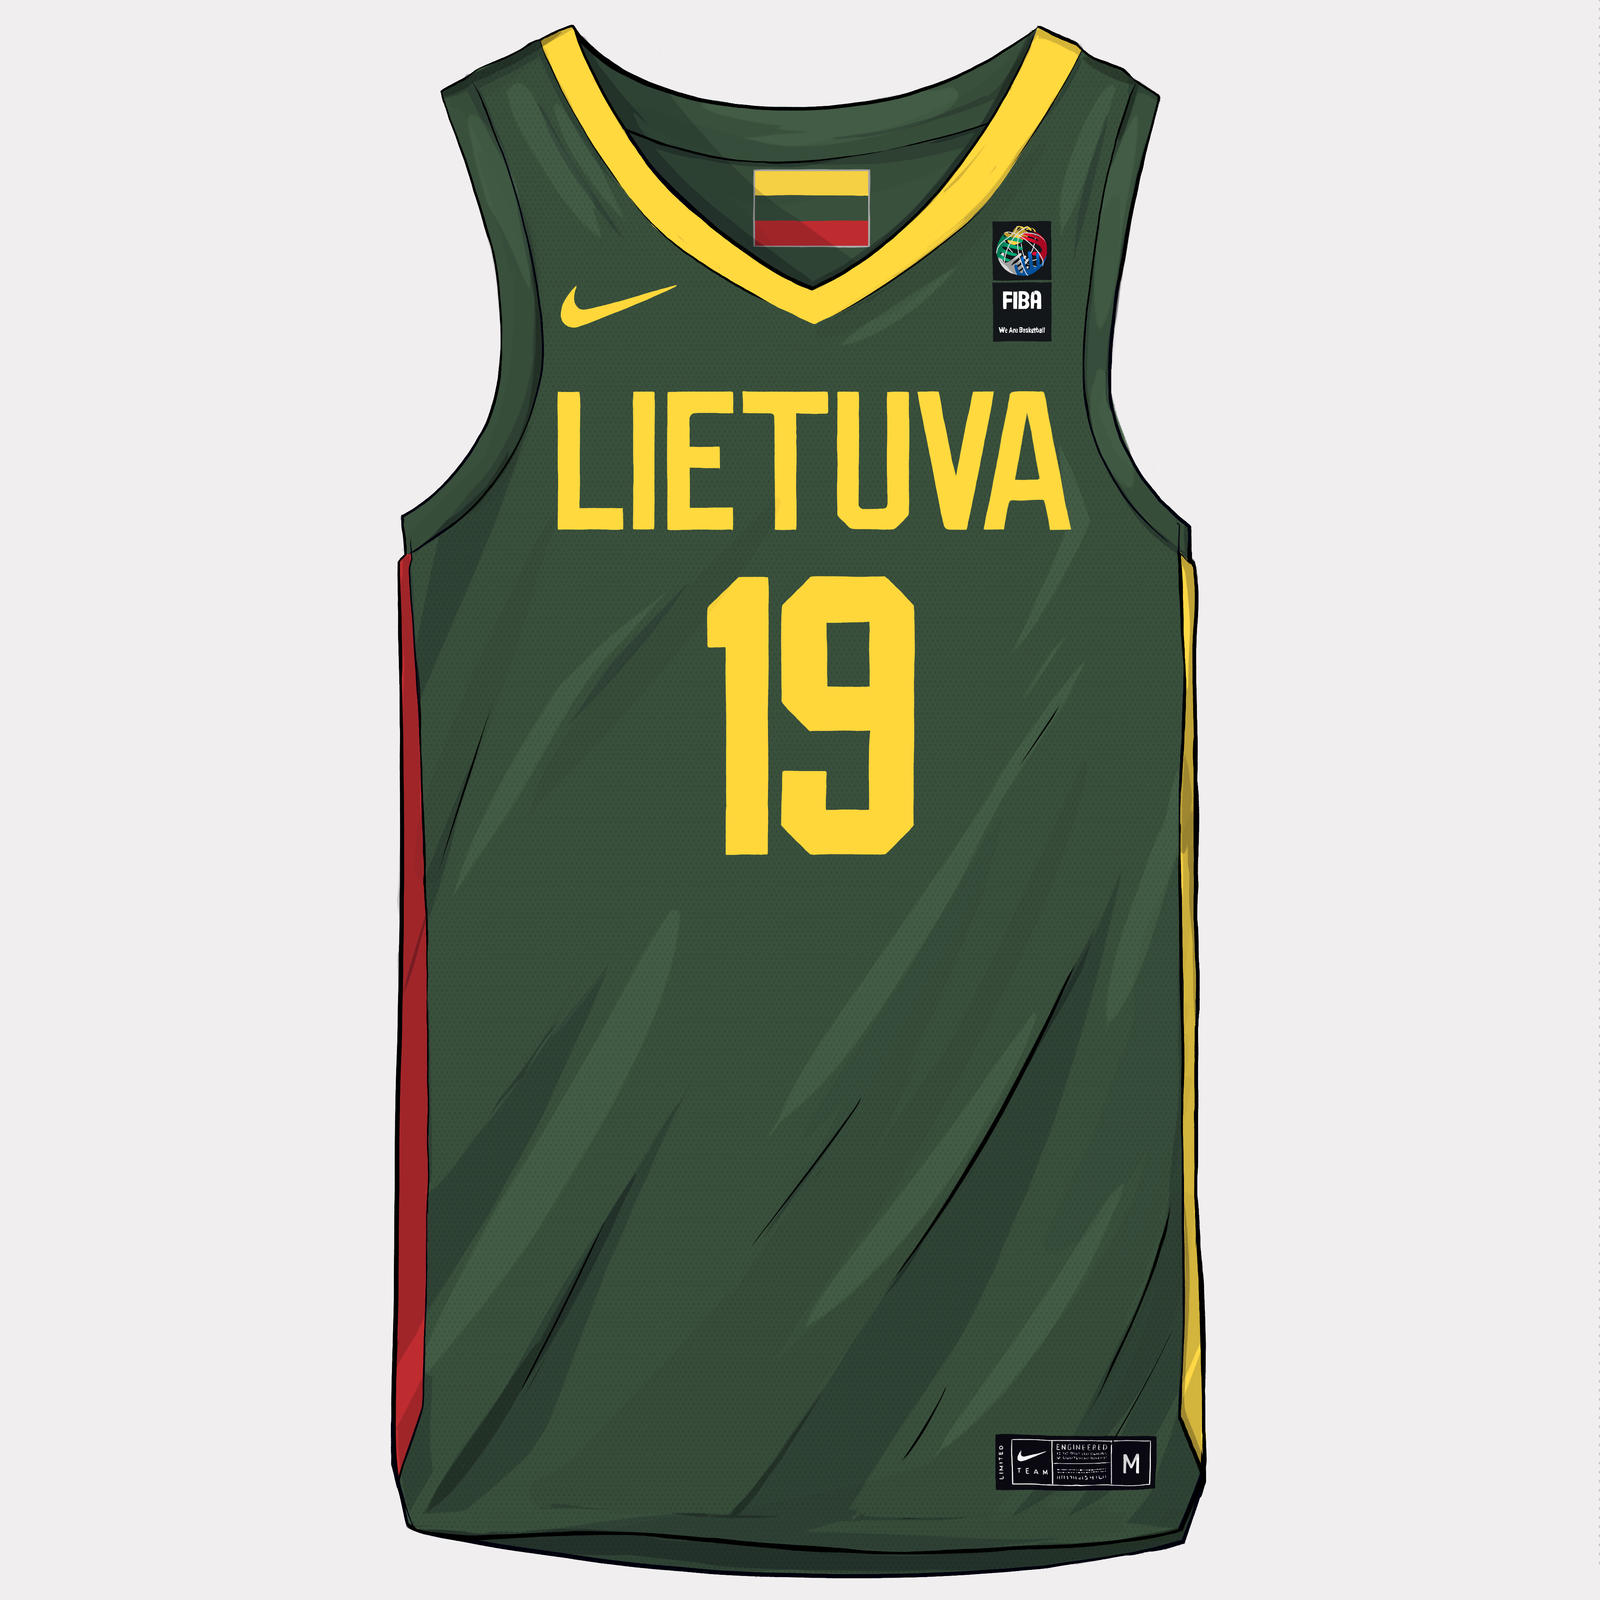 FIBA World Cup 2019 Uniforms 26